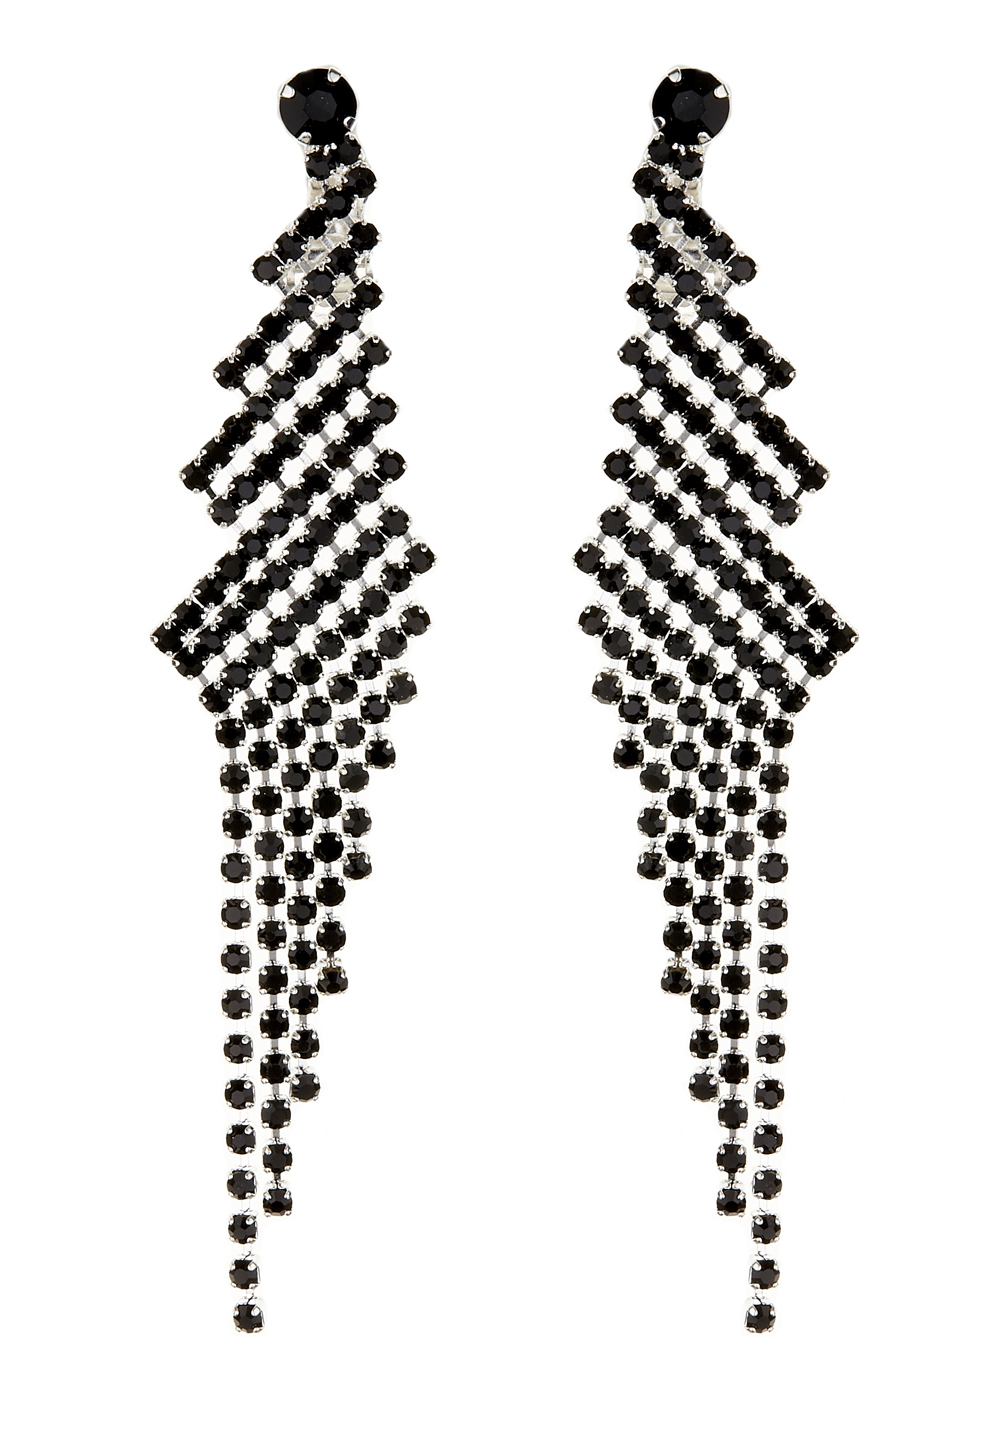 Clip On Earrings - Candra B - silver chandelier earring with black crystals